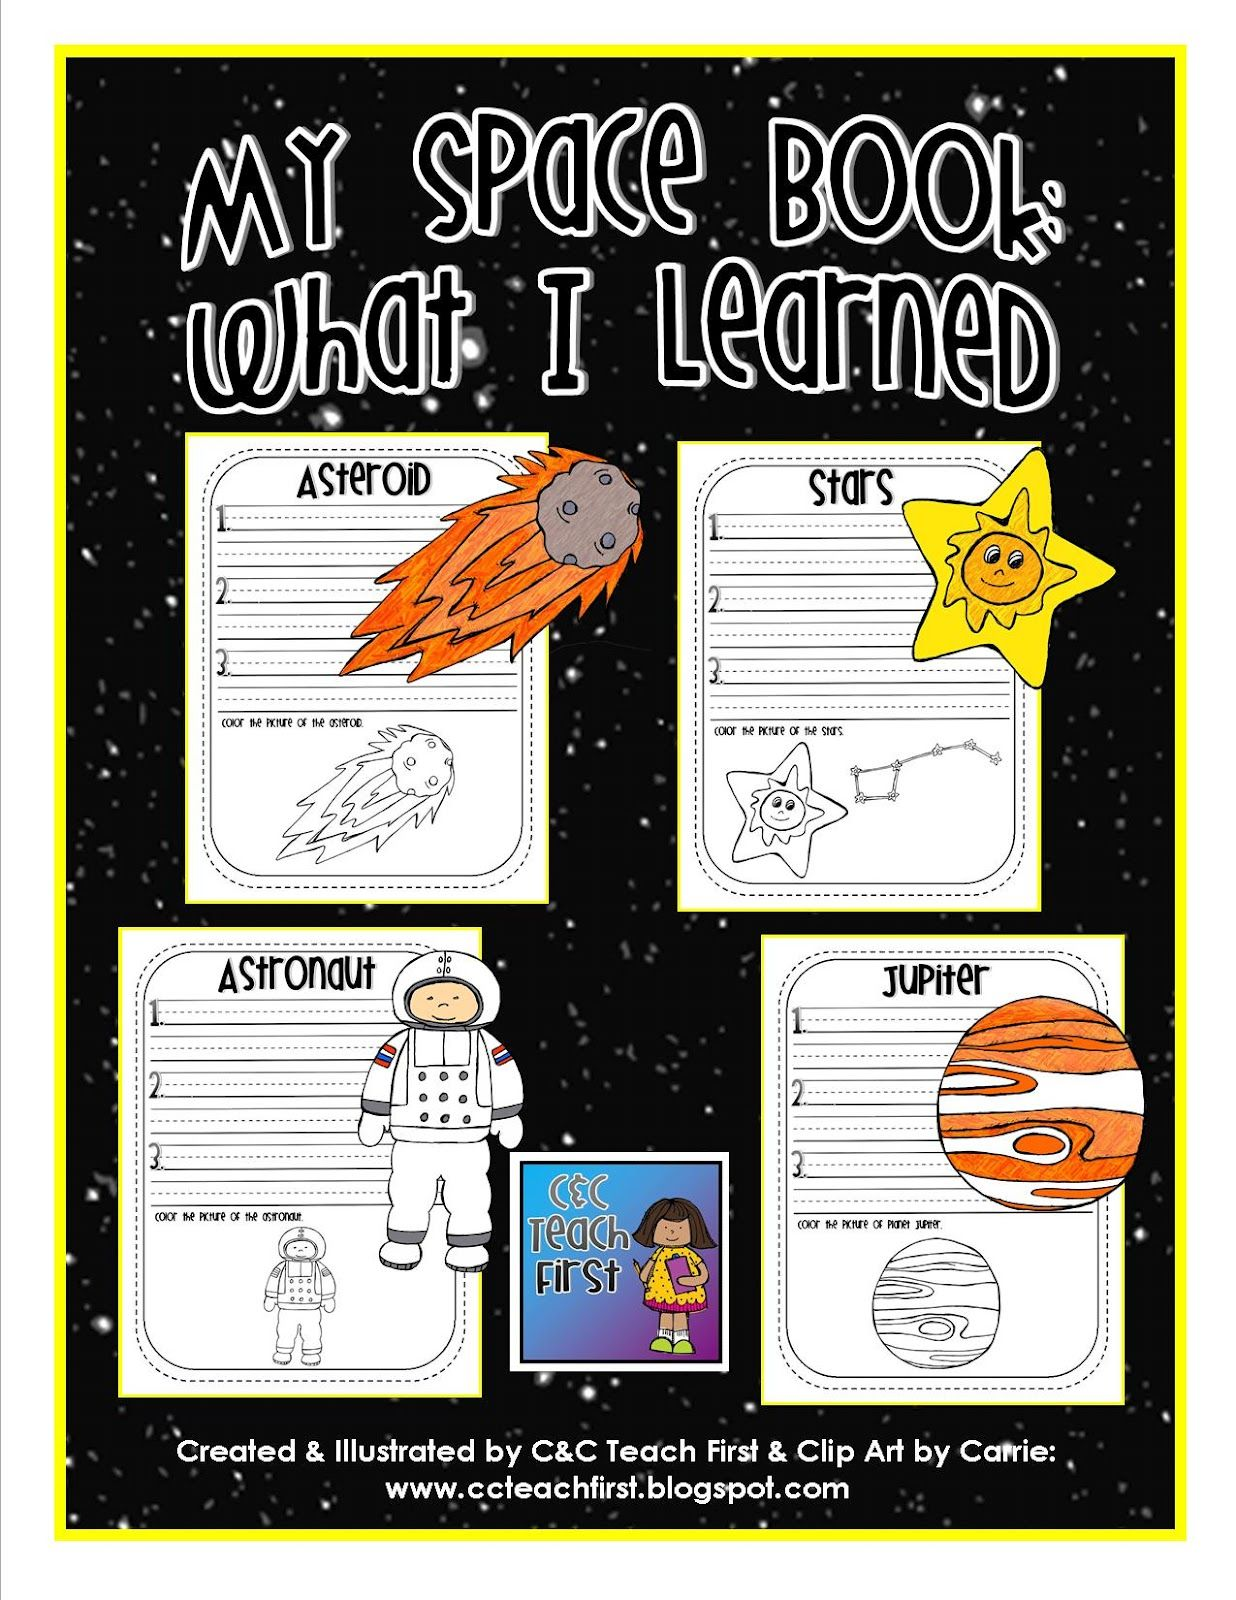 My Space Book Includes Facts Sheets For Mercury Venus Earth Mars Jupiter Saturn Ur